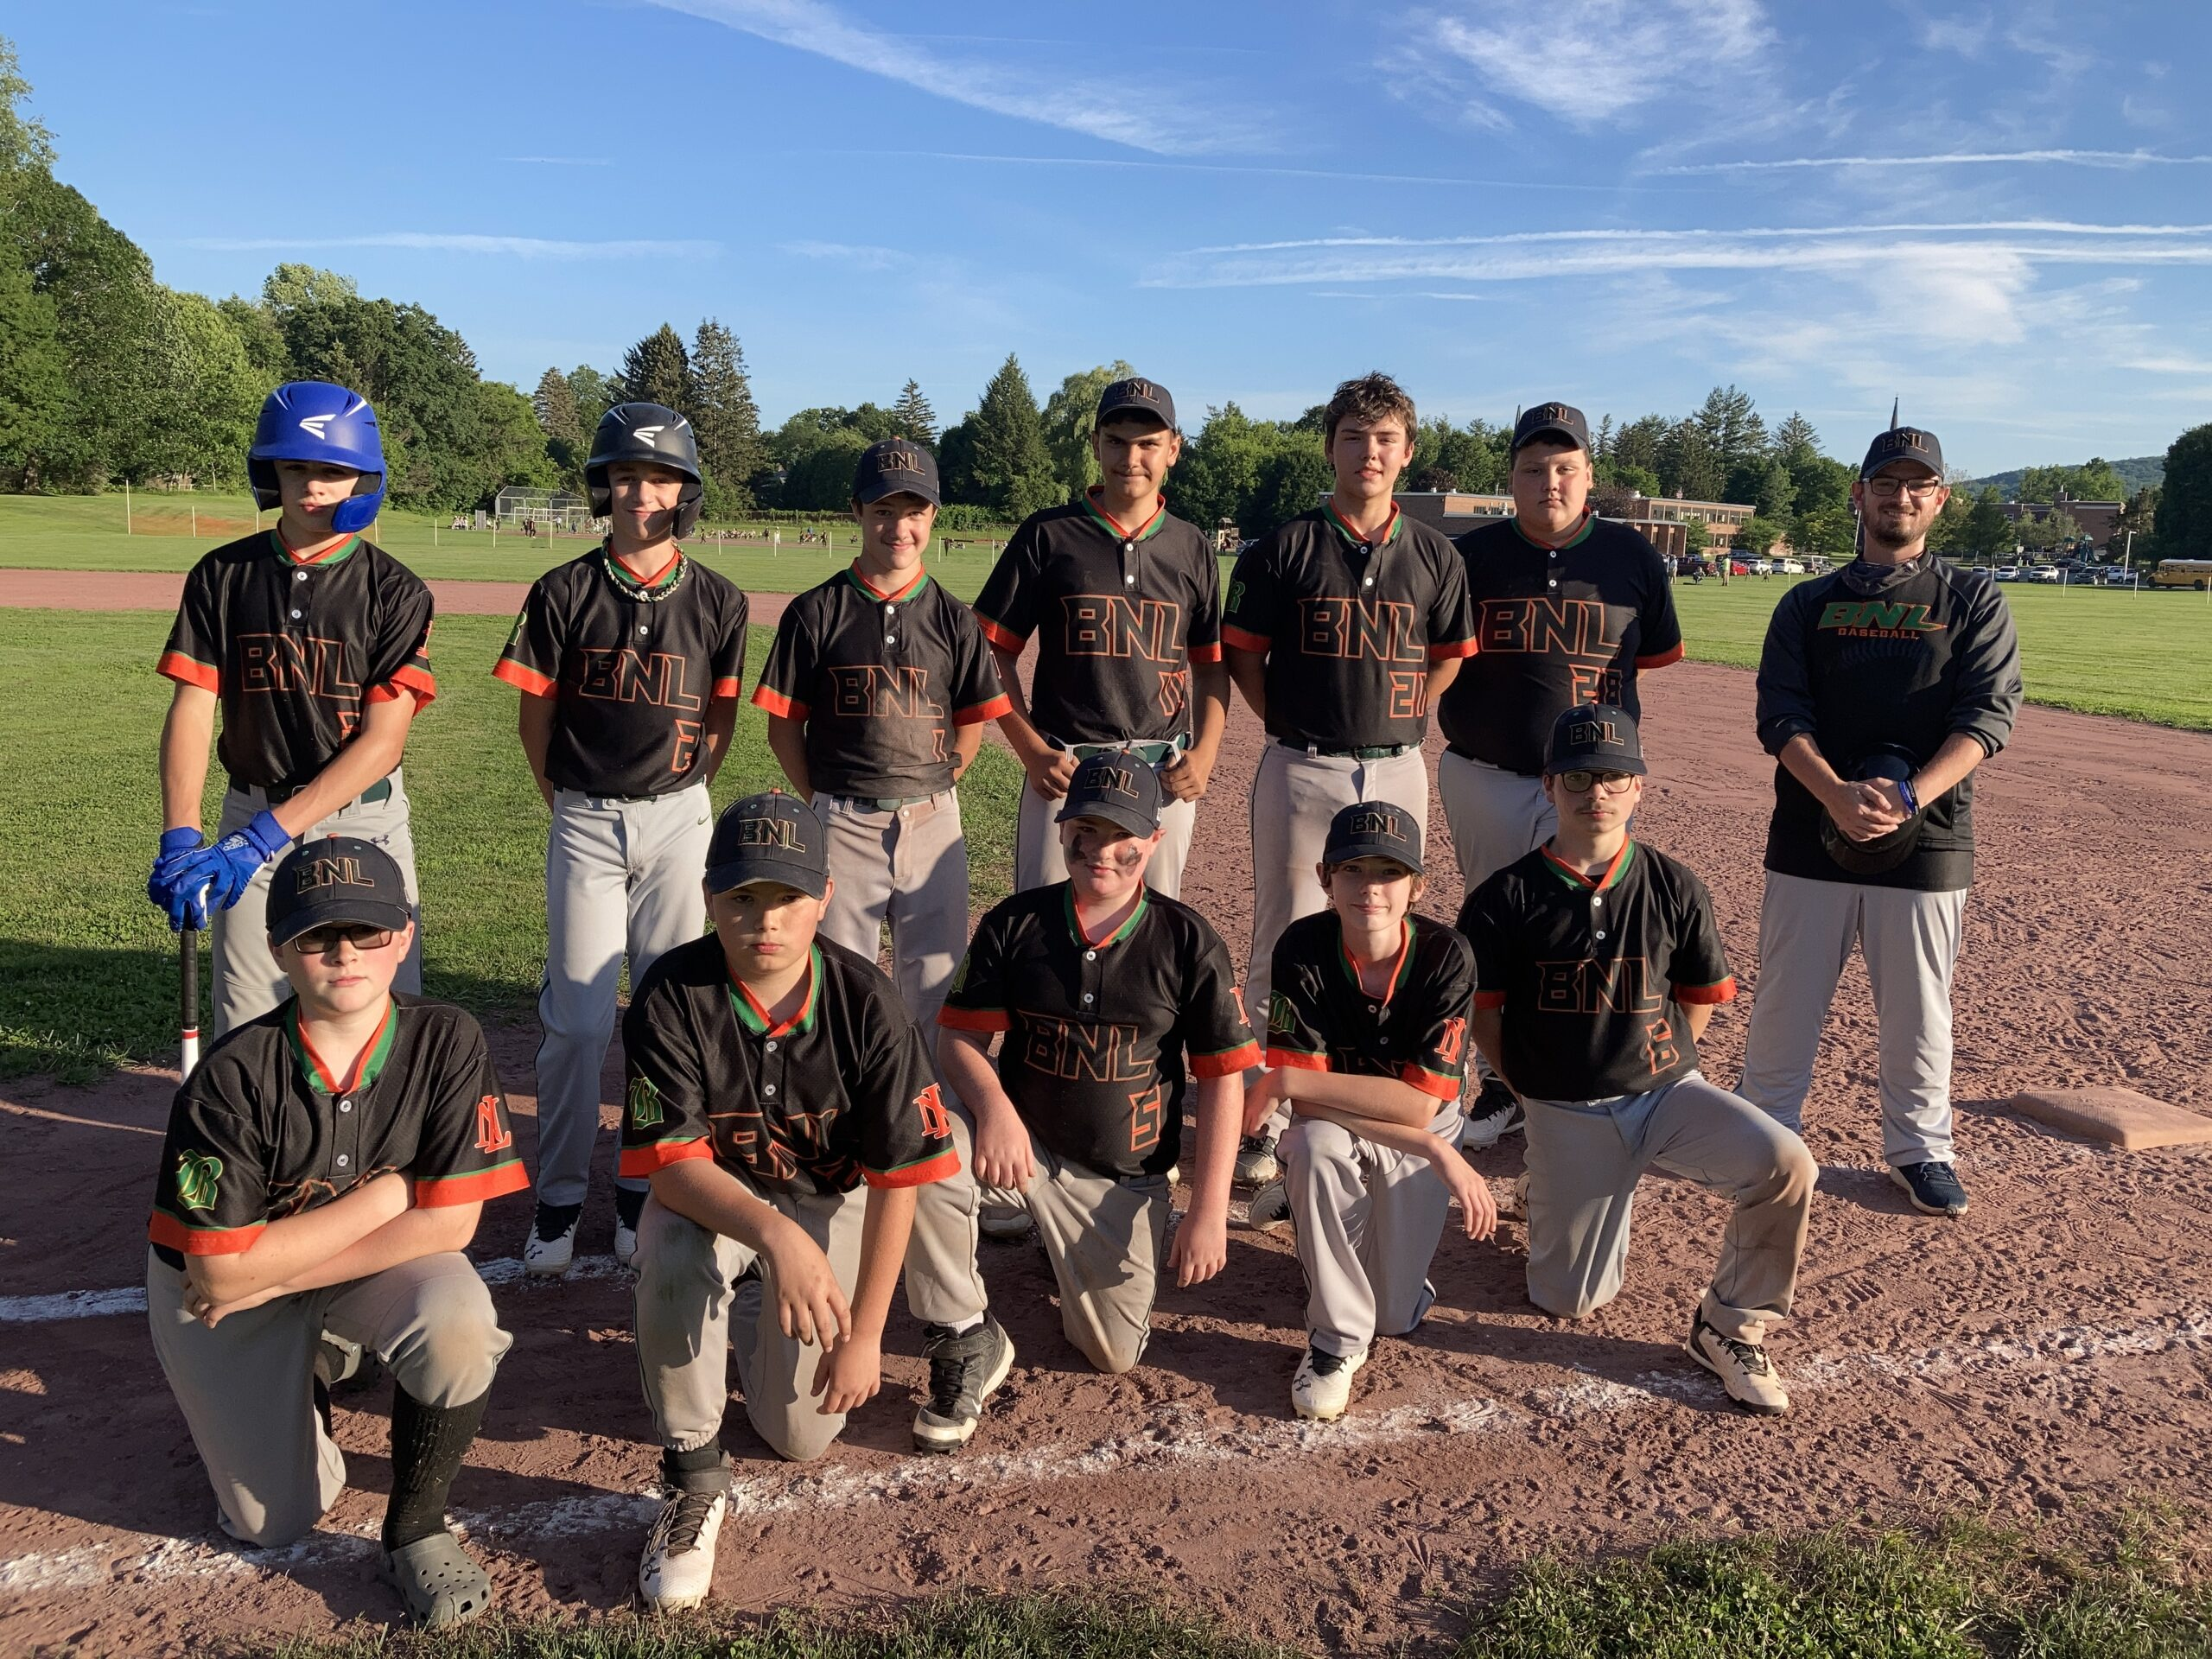 BNL Modified Baseball Finds the Positive As Their Season Concludes